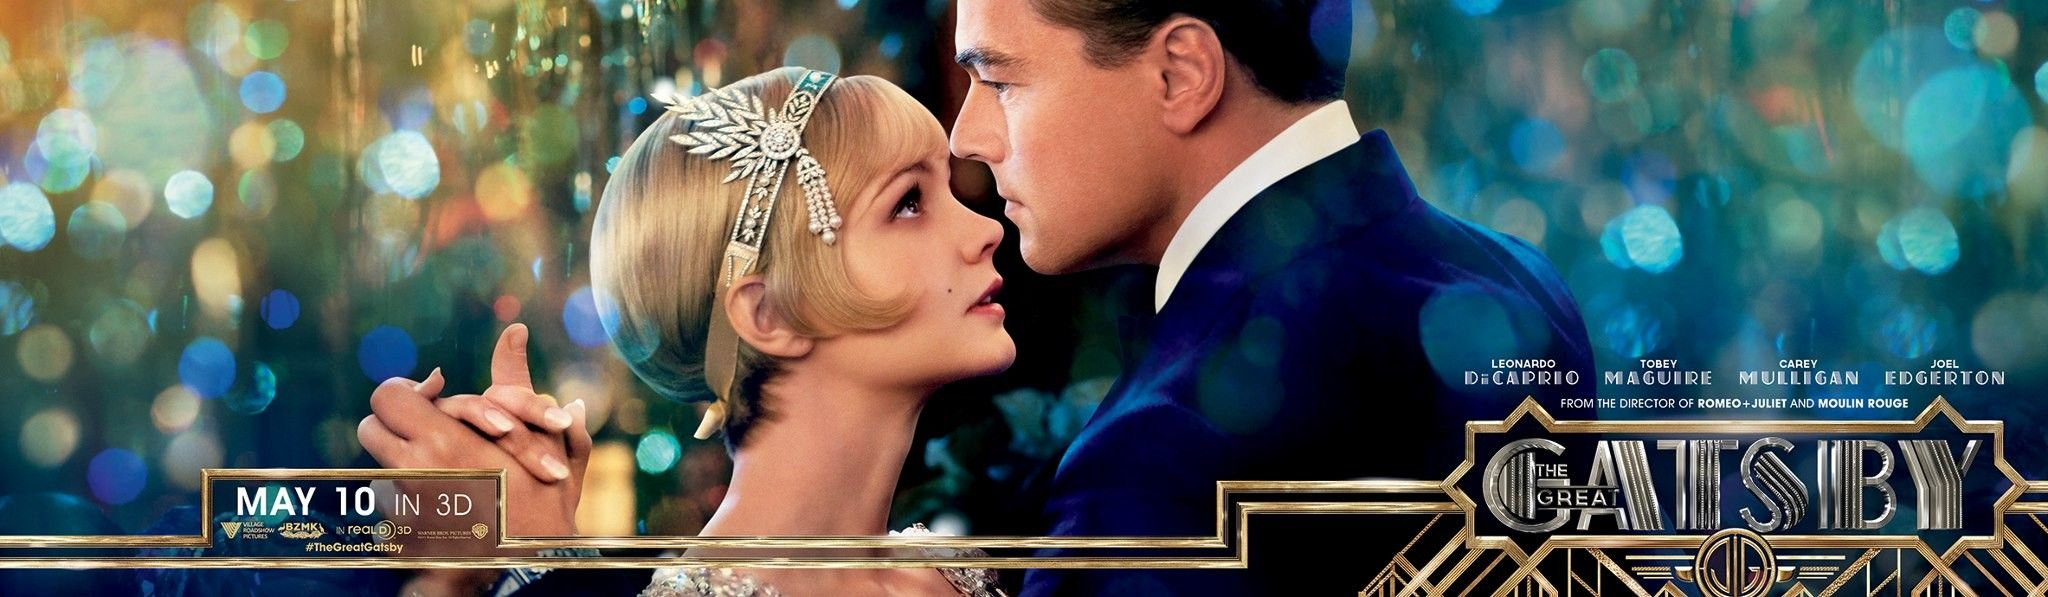 In The Great Gatsby, what morals, values, or goals are expressed and described?